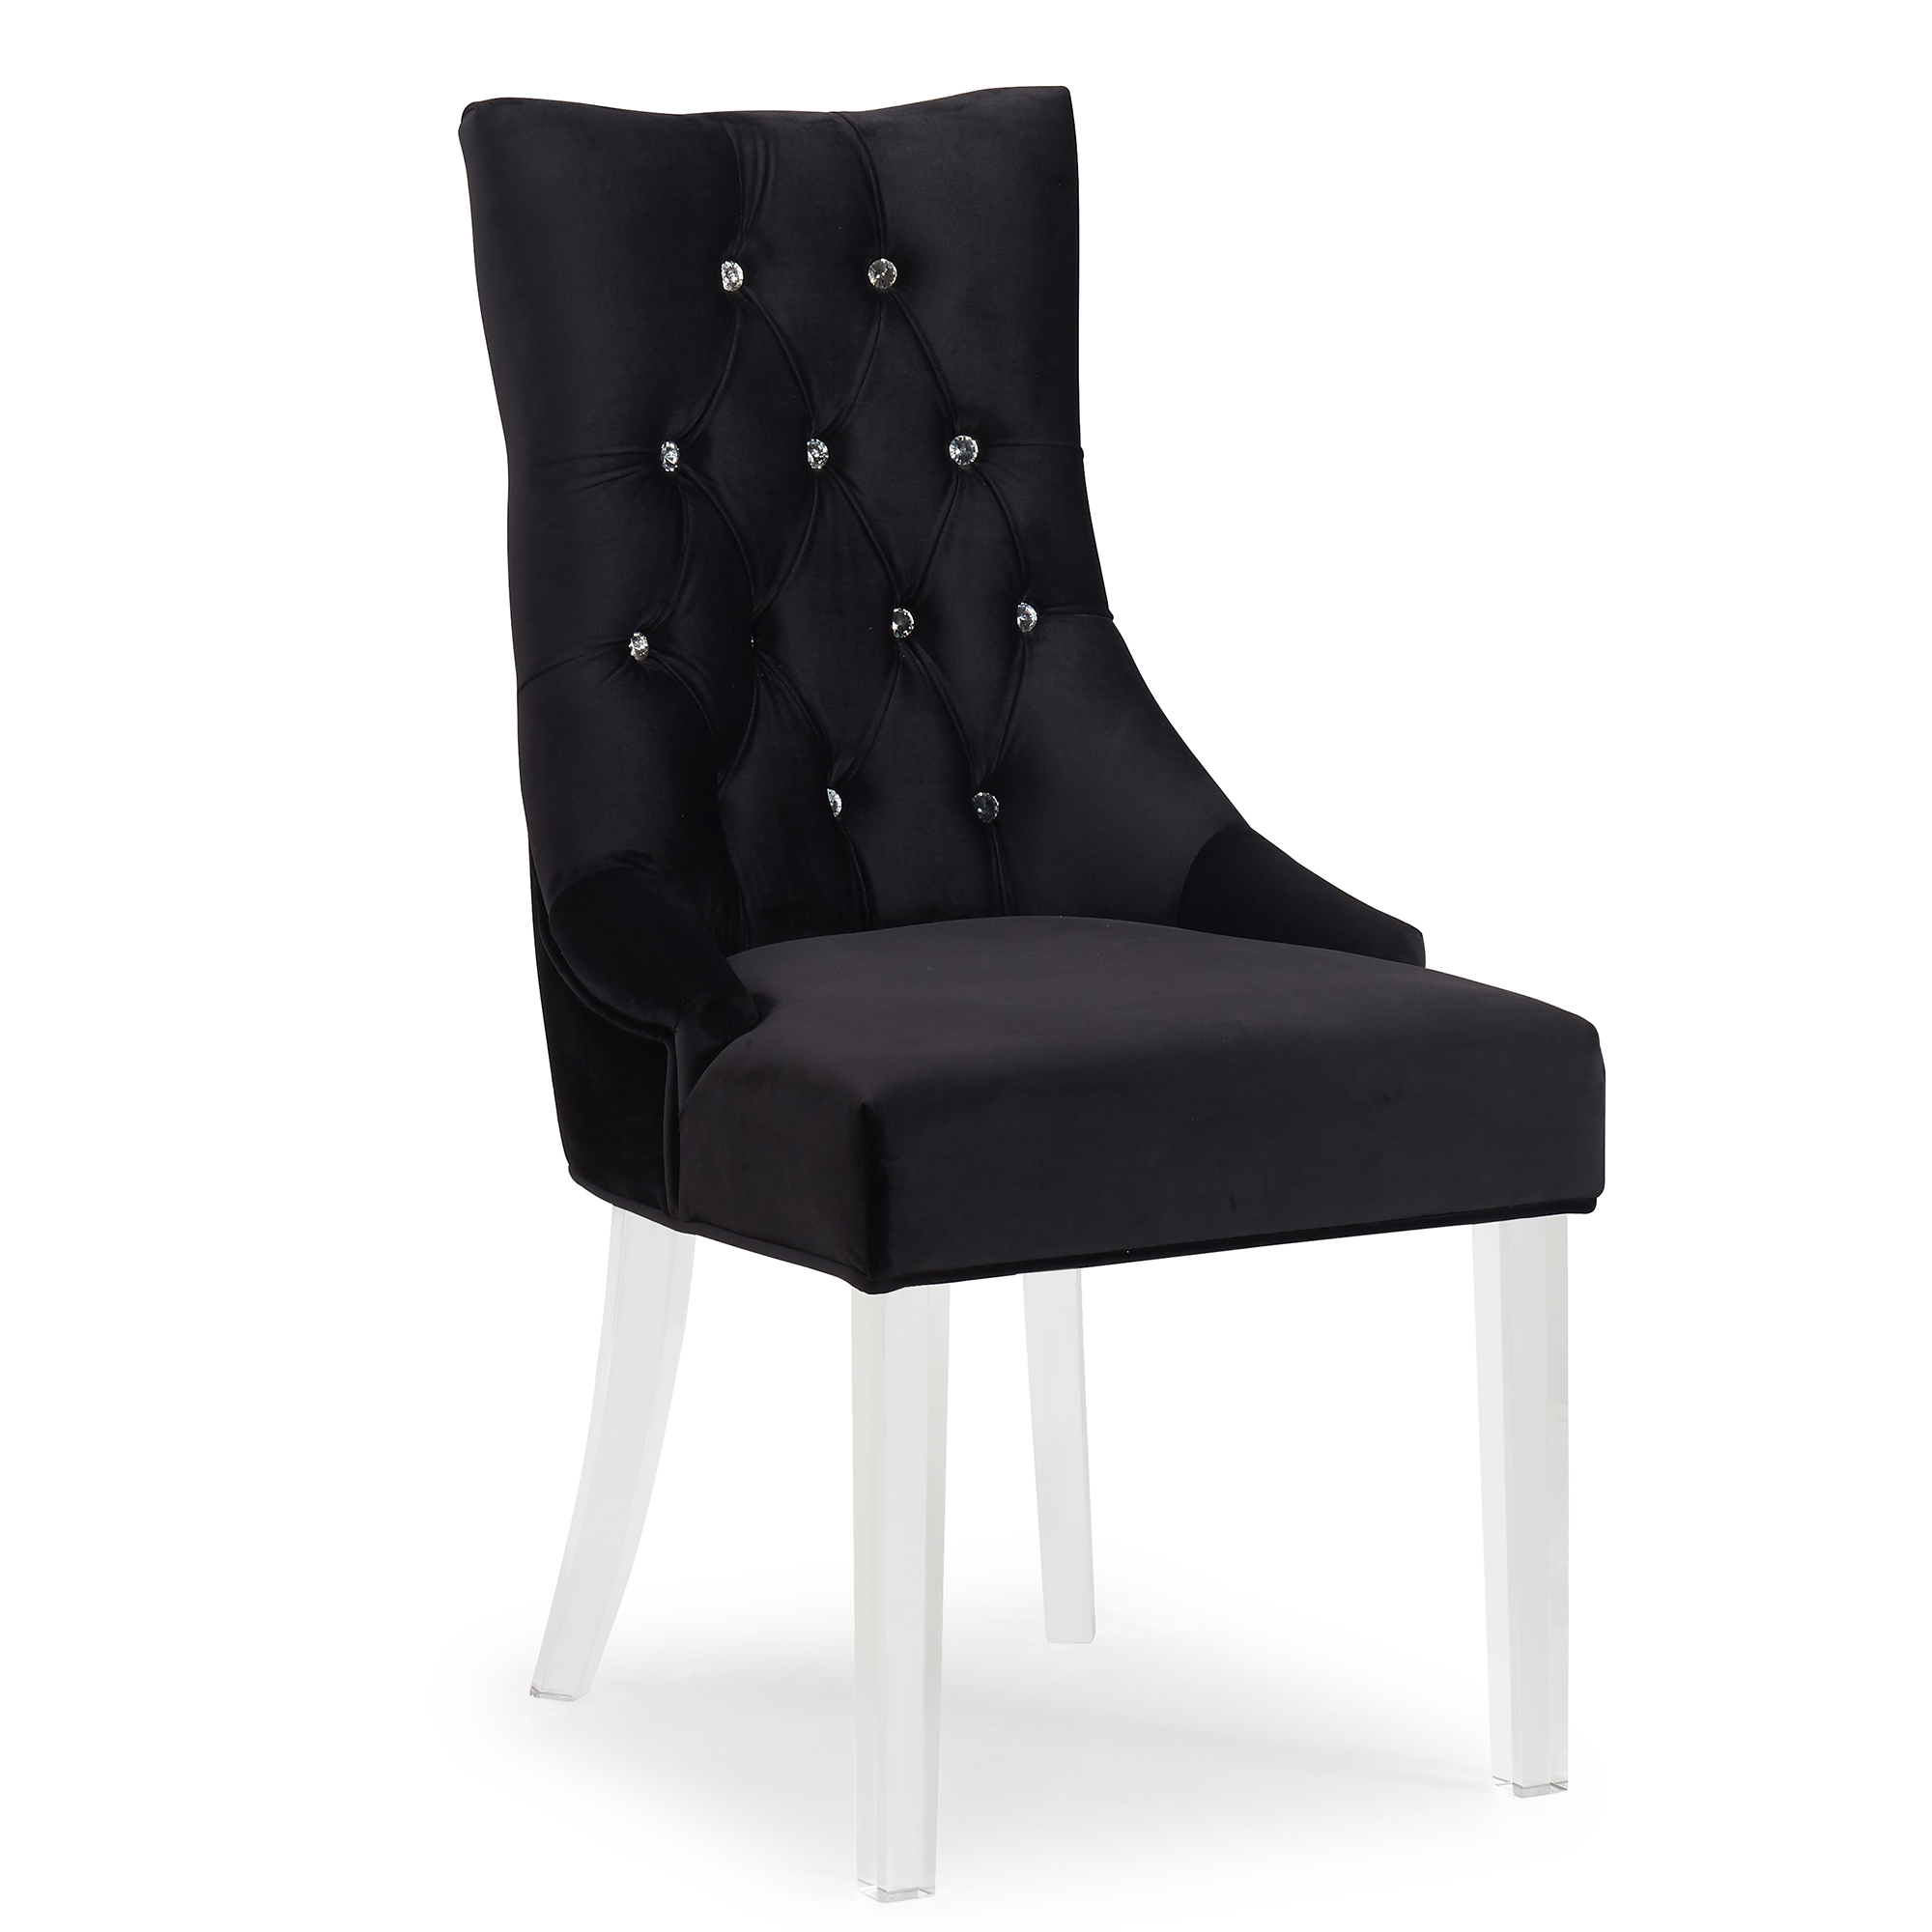 CAVALLI-ACCENT CHAIR-BLACK, 841173025861, Accent Chairs by Midha Furniture to Brampton, Mississauga, Etobicoke, Toronto, Scraborough, Caledon, Oakville, Markham, Ajax, Pickering, Oshawa, Richmondhill, Kitchener, Hamilton and GTA area